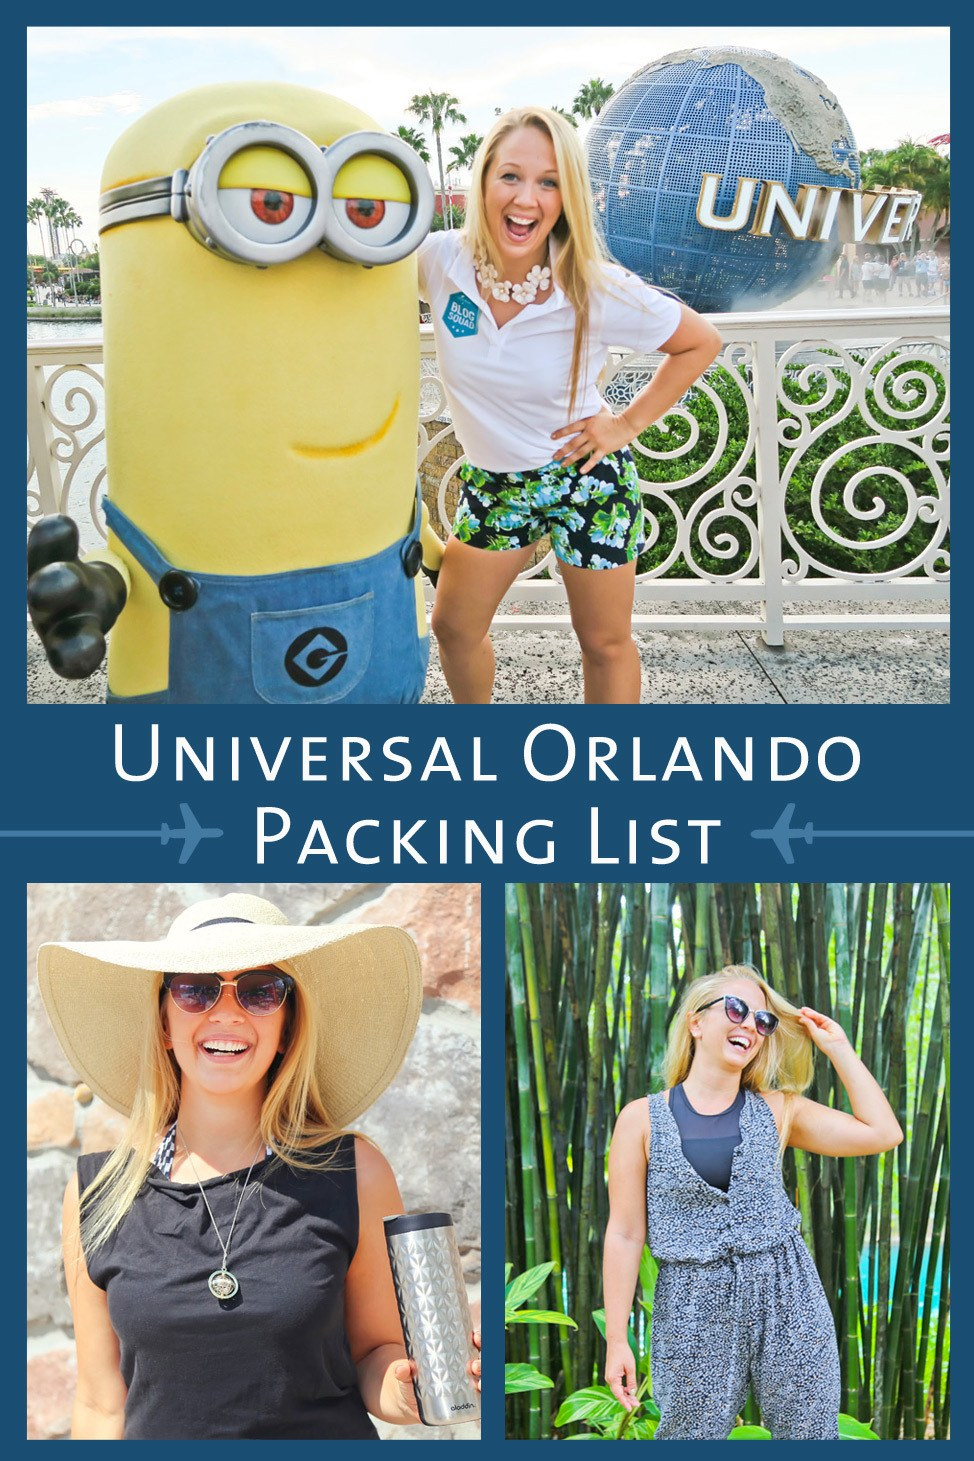 Packing List for Universal Orlando